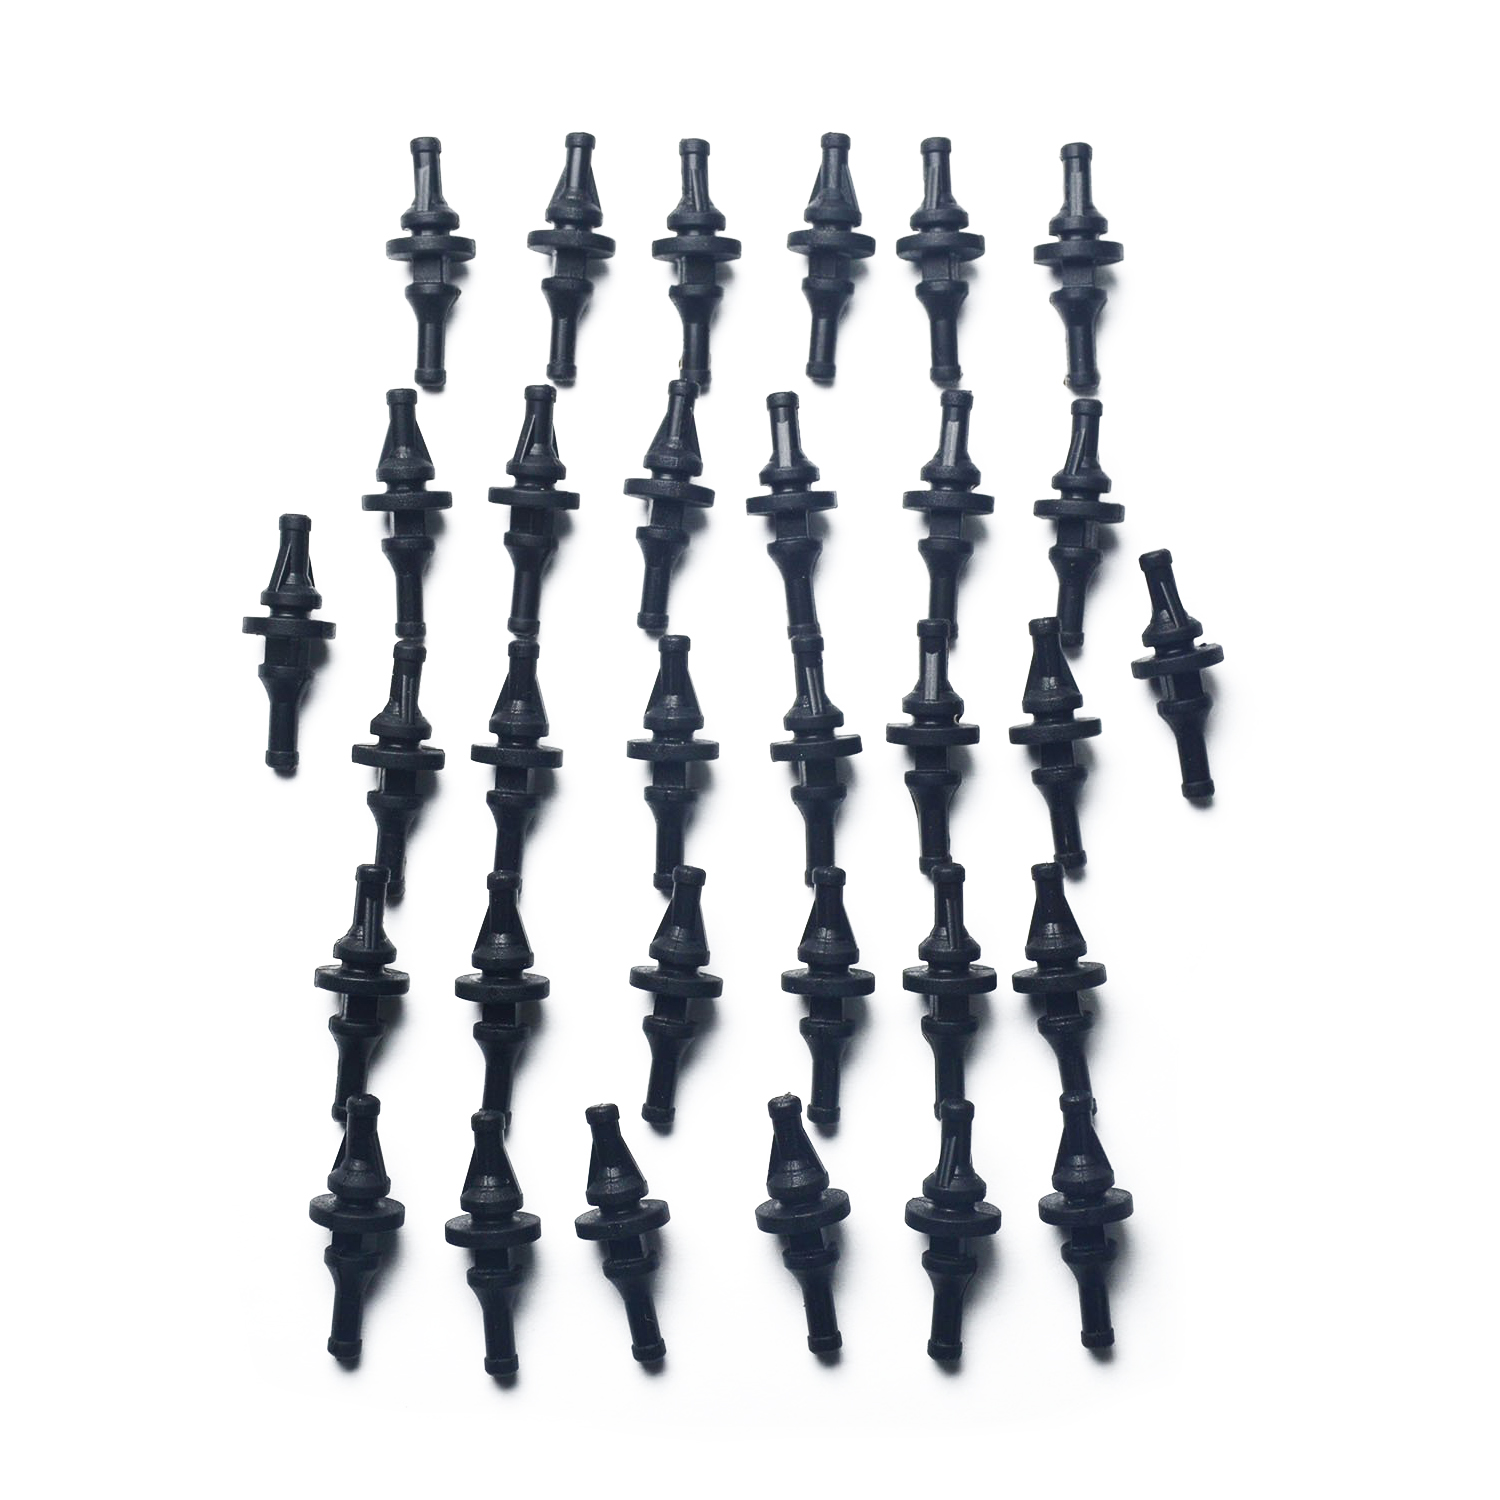 32 PCS Rubber Anti Vibration Mount Screw Pin Rivet,for PC Case Fans Anti Vibration uxcell m12 50 x 30mm anti vibration rubber mounts isolators bobbins